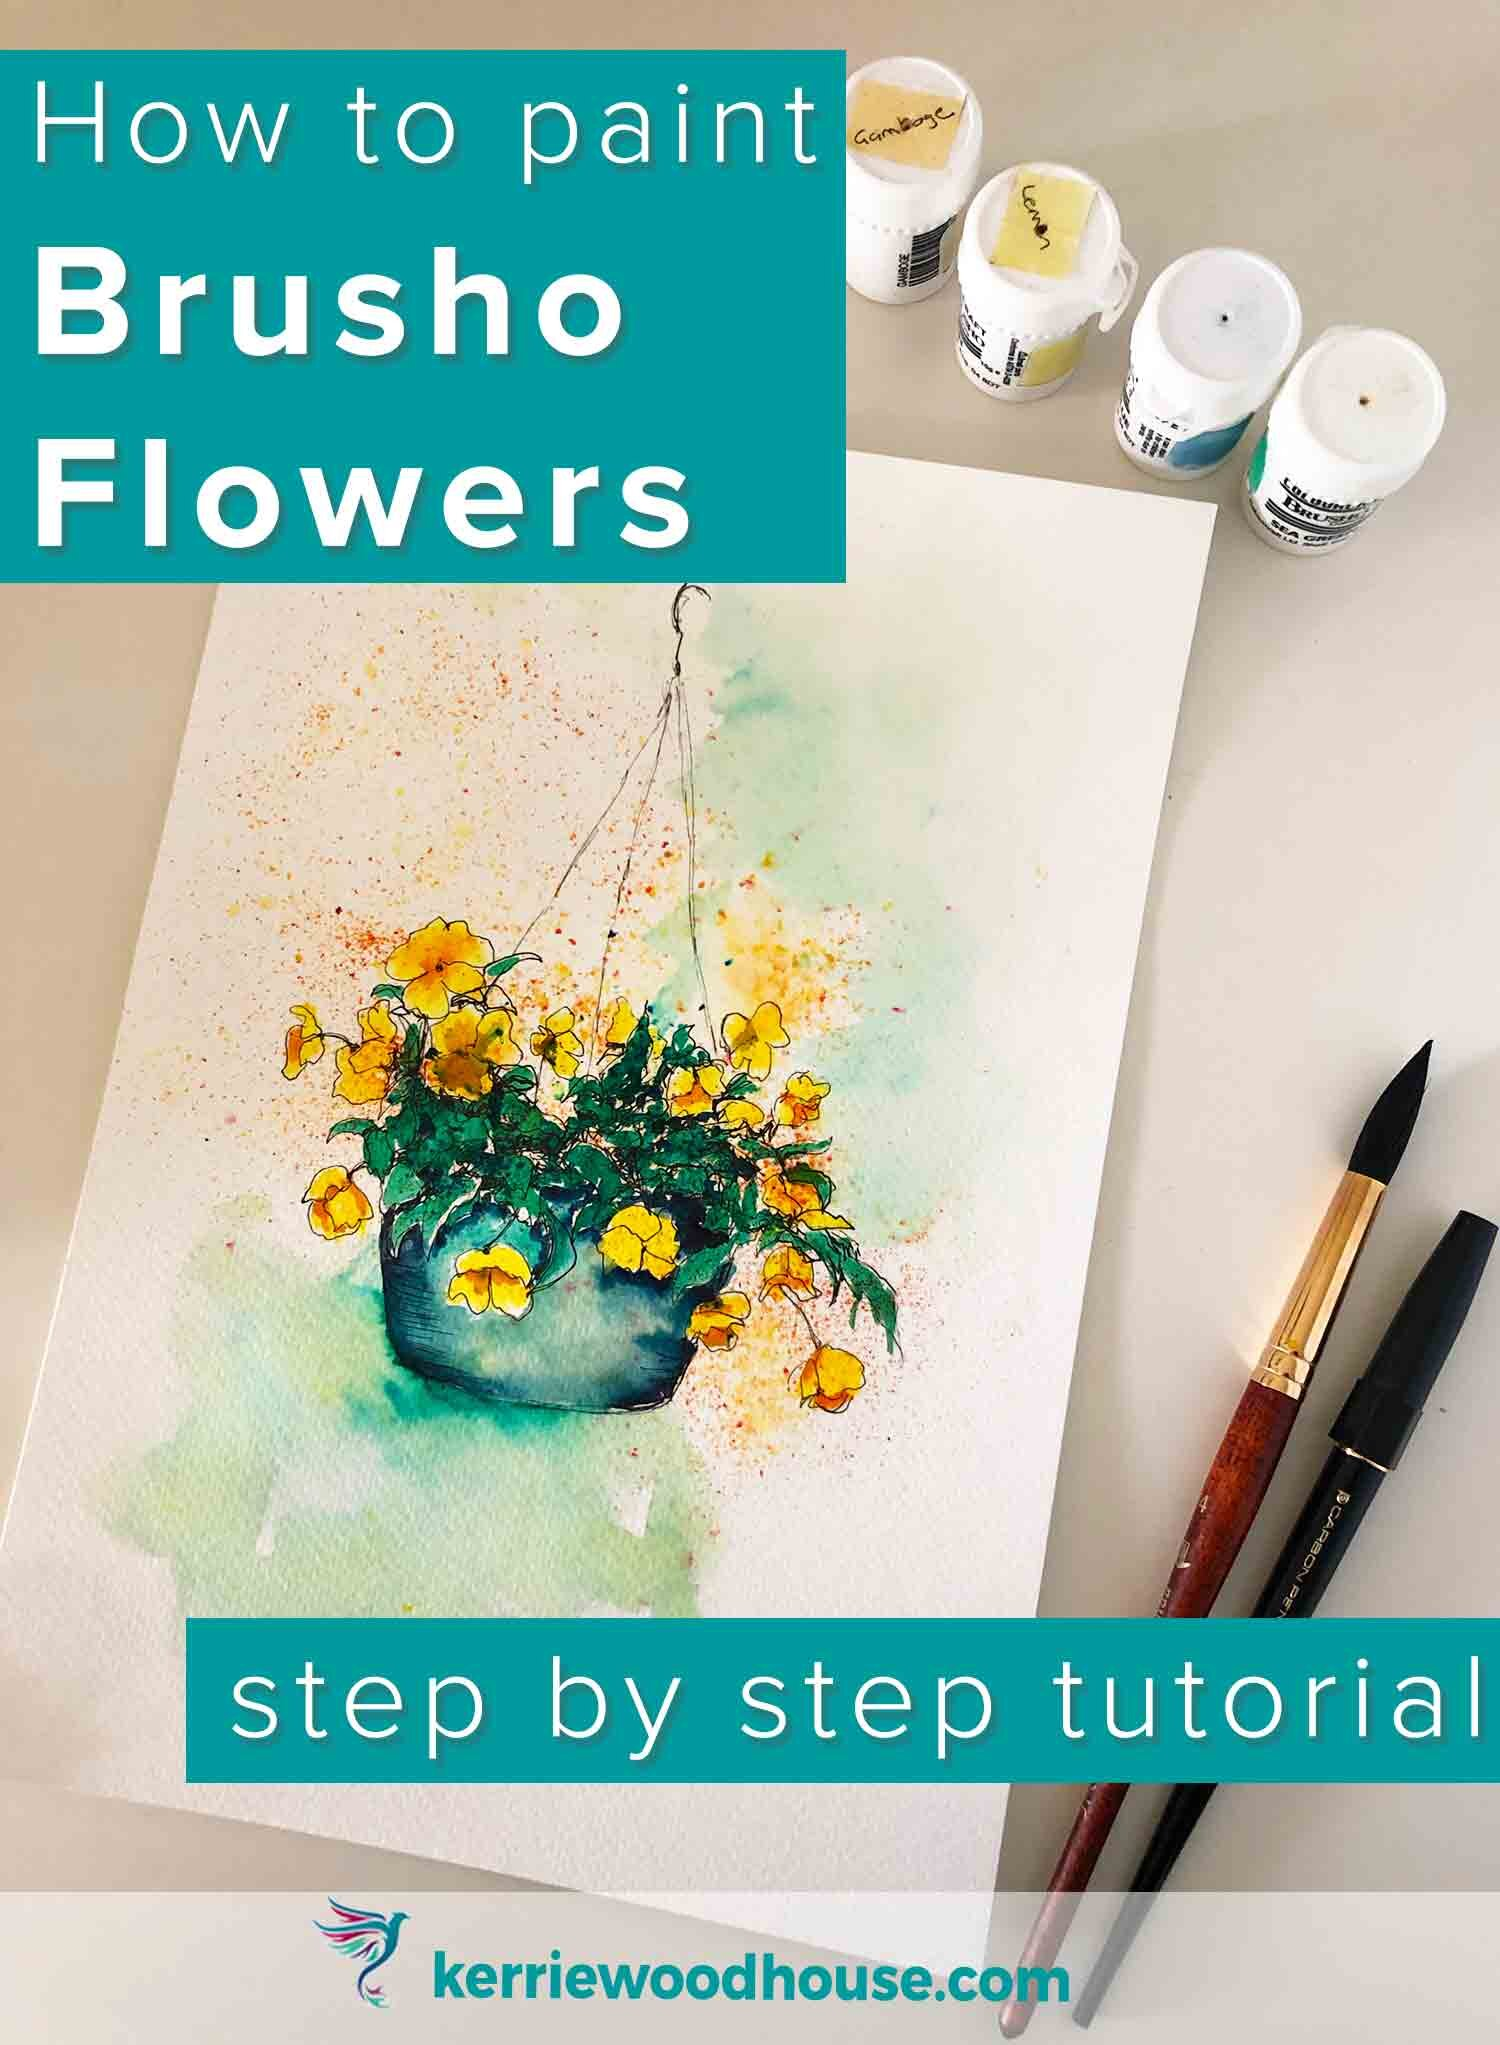 How-to-paint-Brusho-flowers-step-by-step-tutorial.jpg